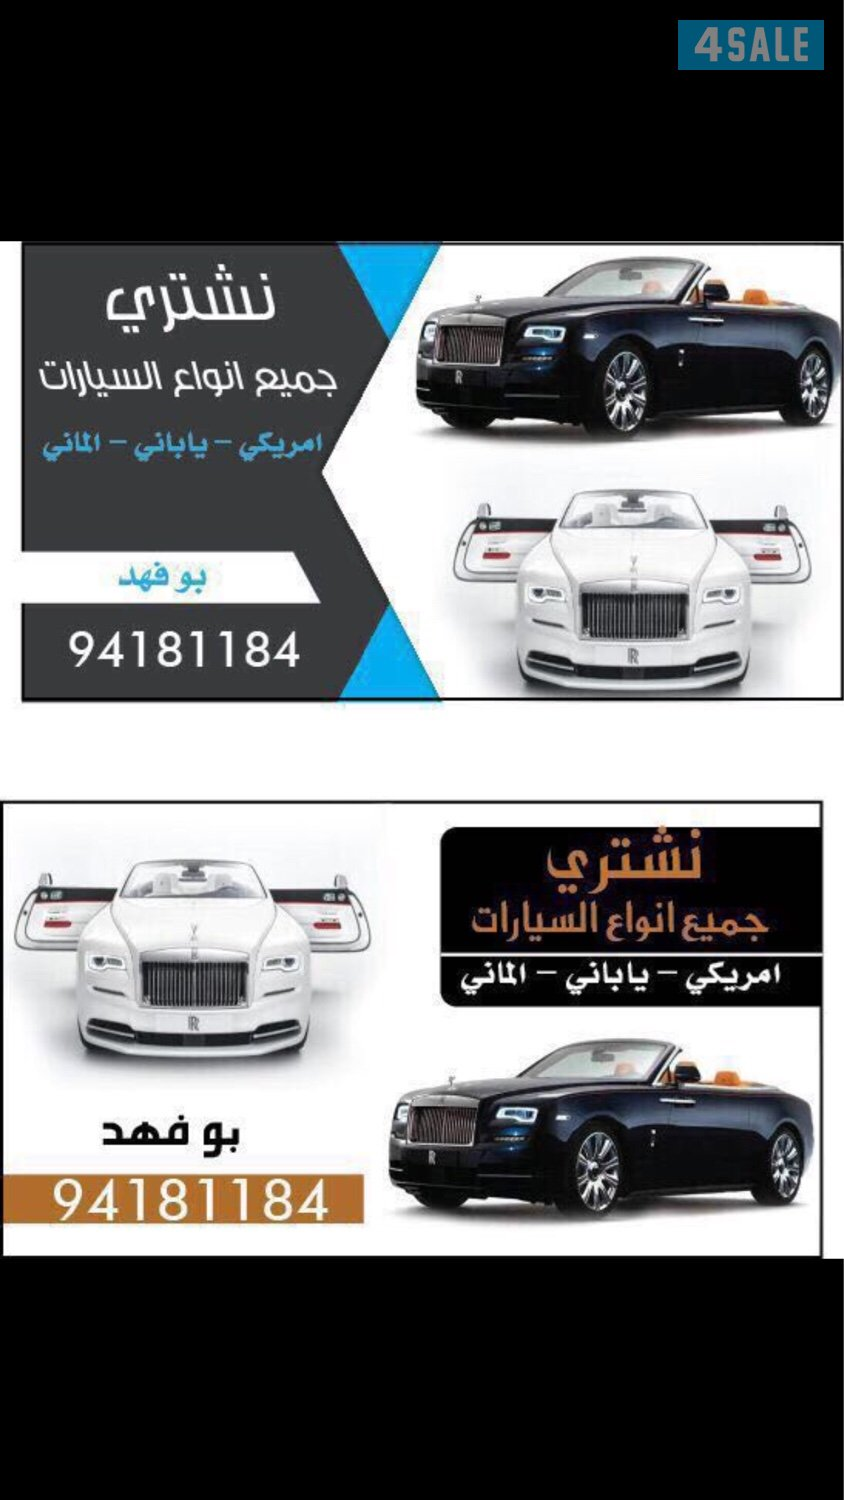 Buy all kinds of cars 94181184